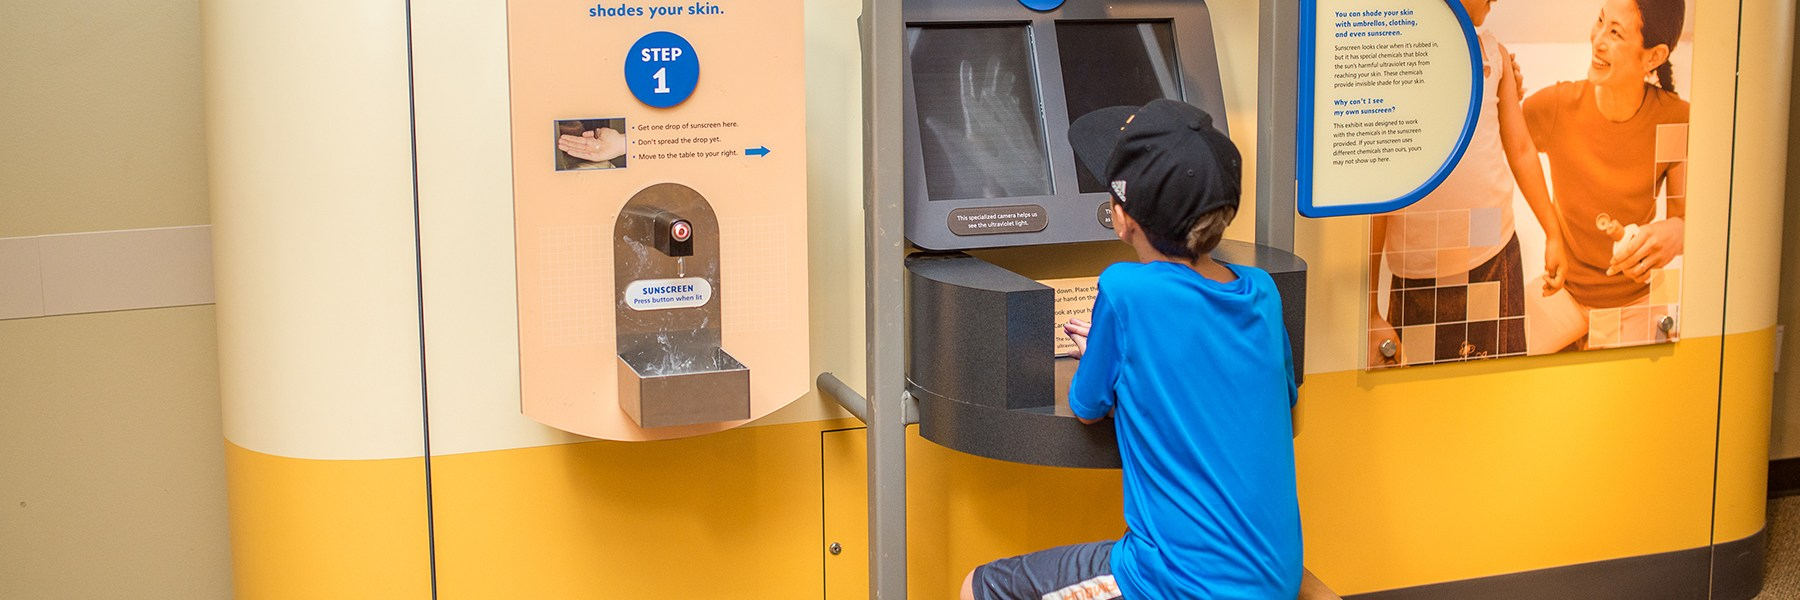 A boy sits at the sunscreen station and looks at his hands under UV light.